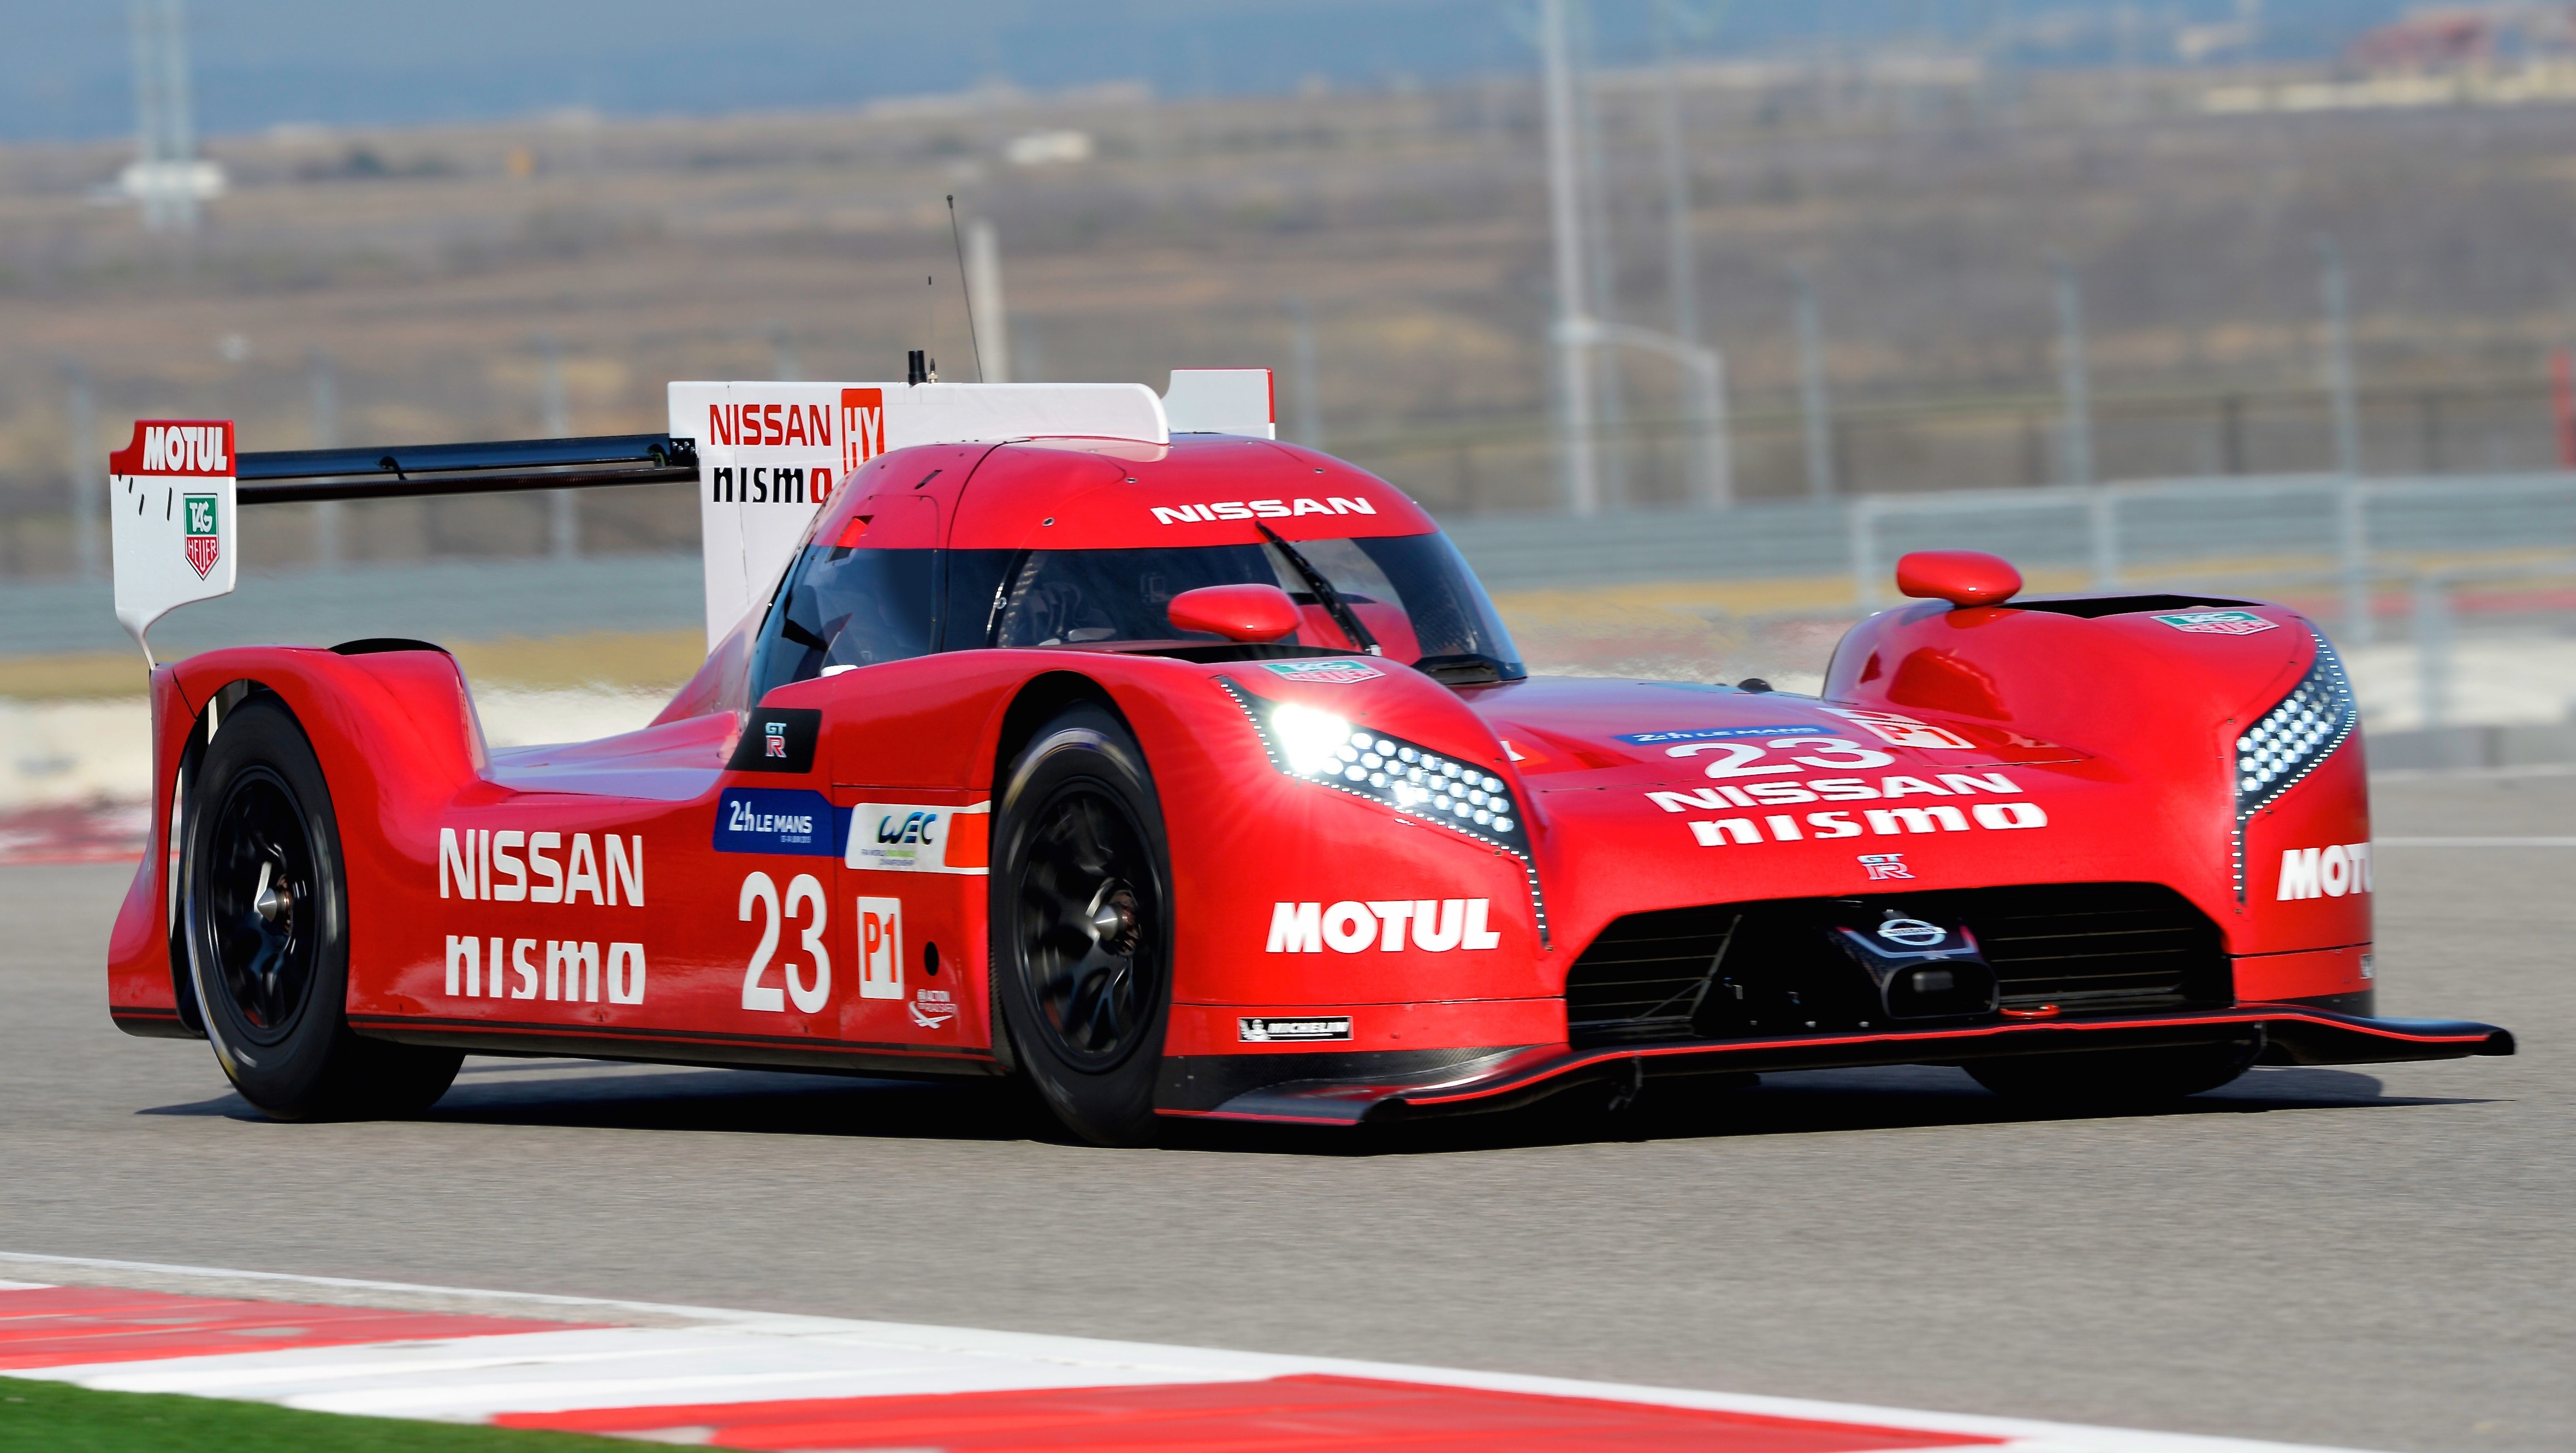 Nissan Gt R Lm Nismo Front Wheel Drive Lmp1 Hybrid Image